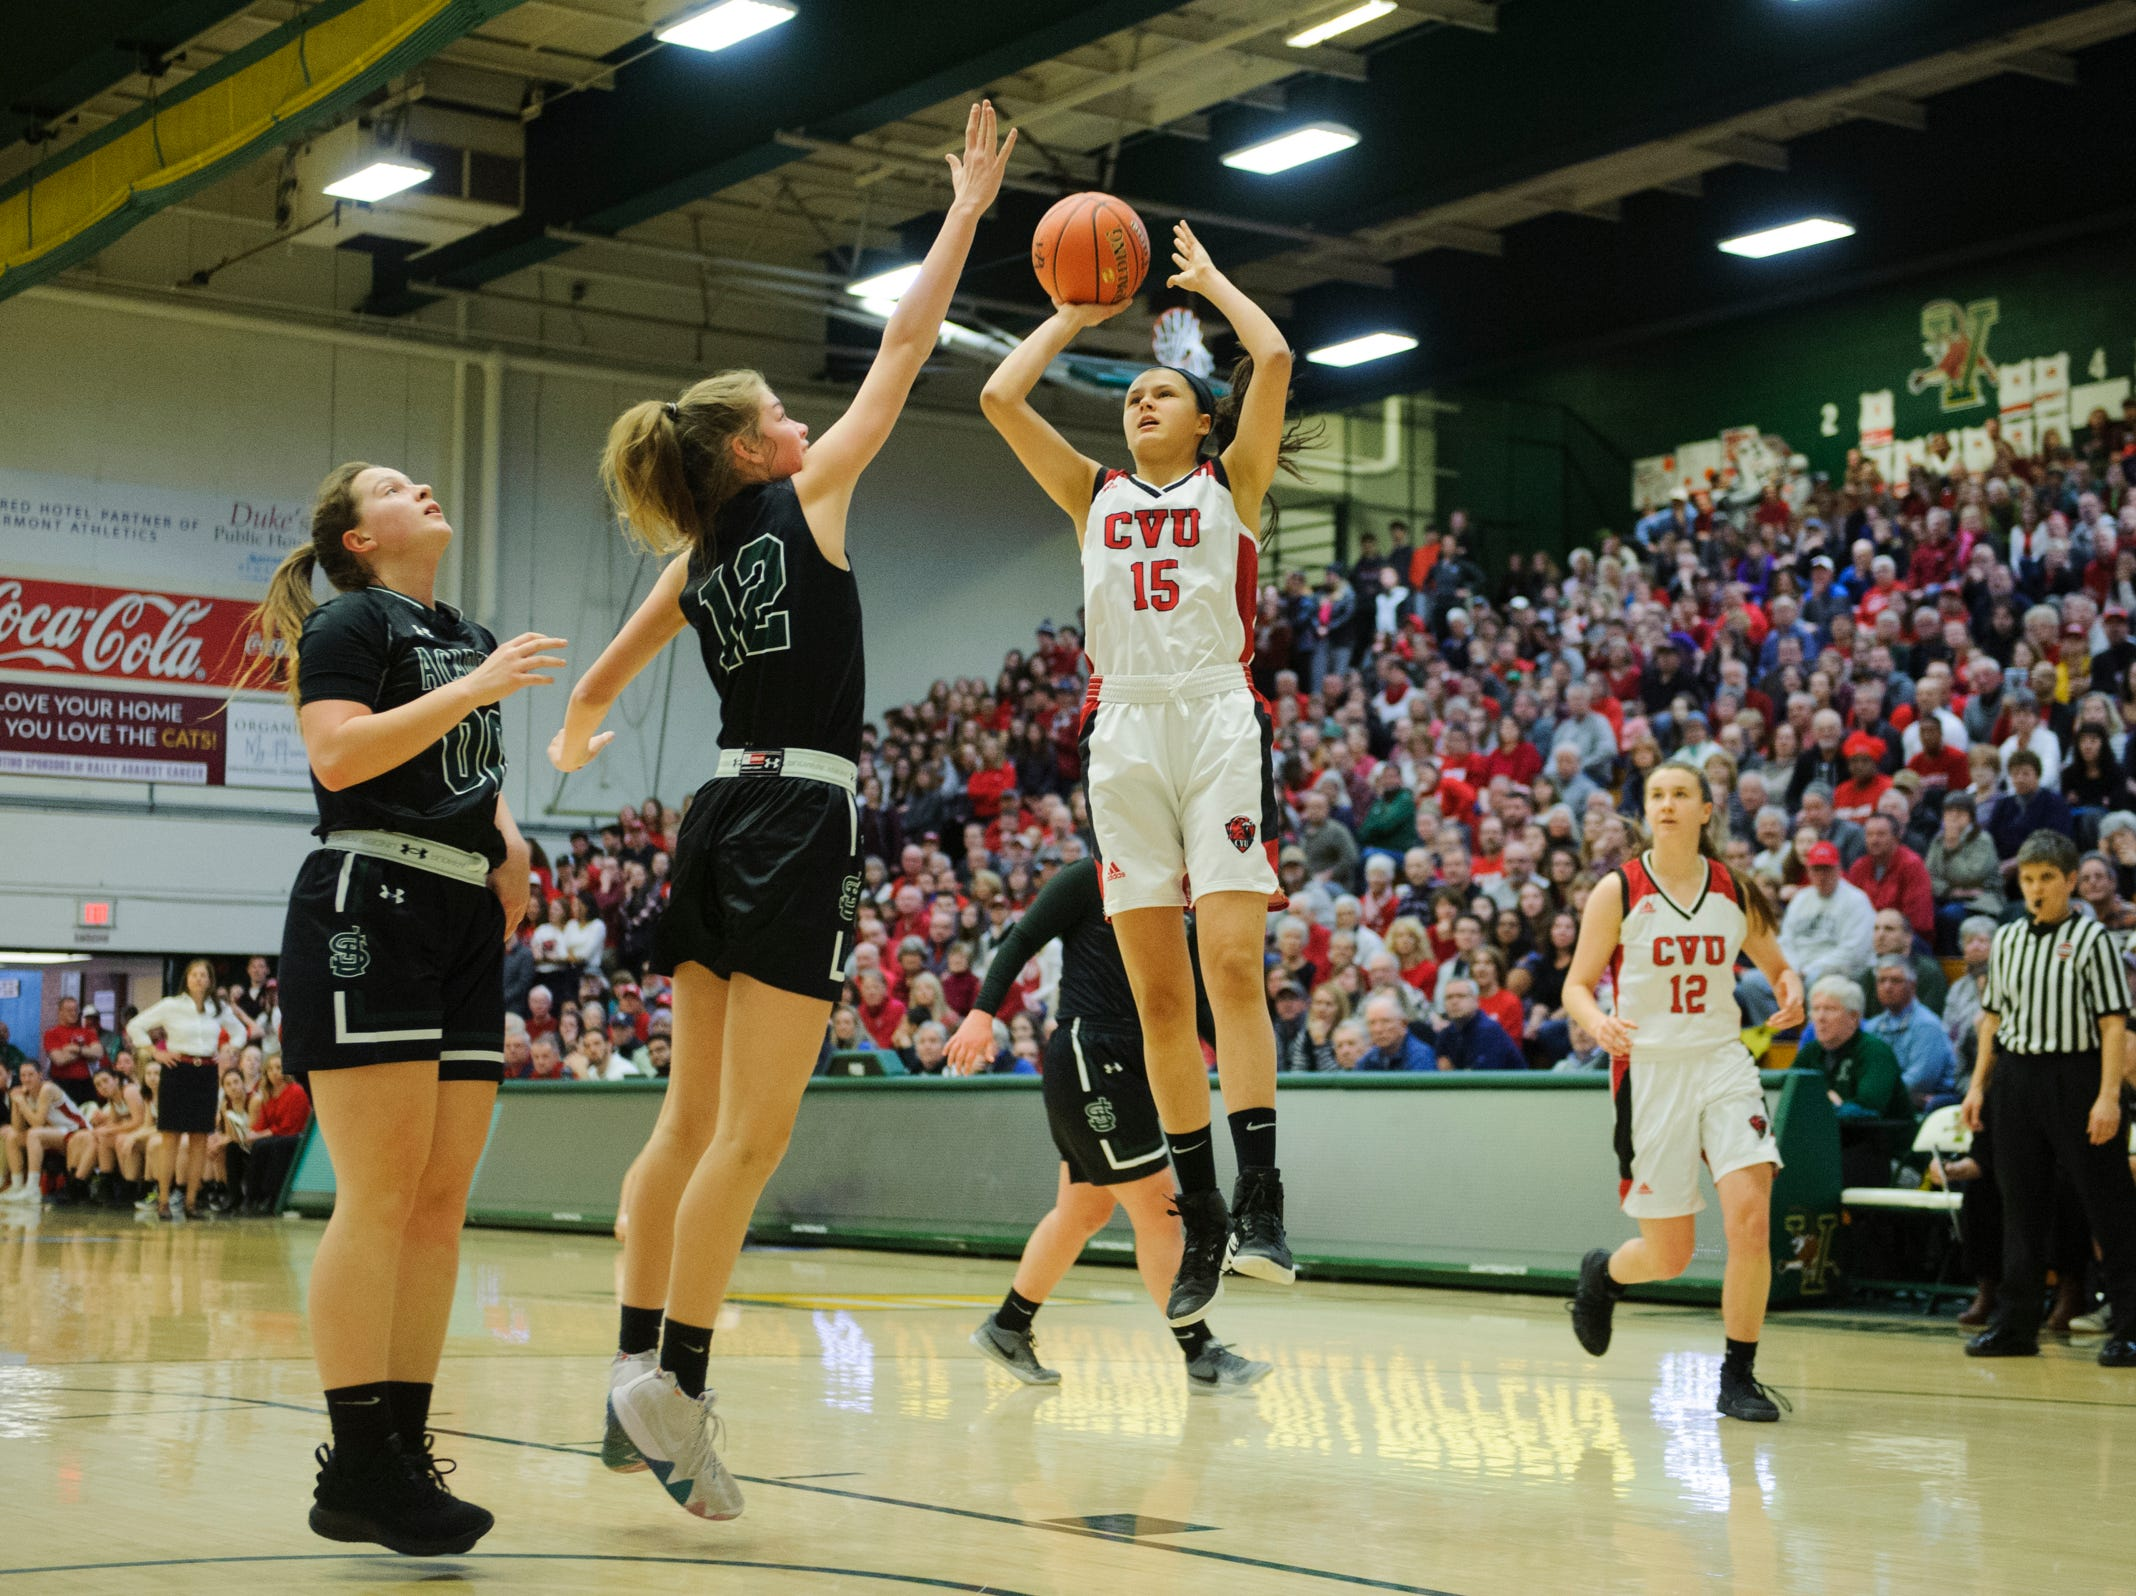 CVU's Bray Hunter (15) shoots the ball over St. Johnsbury's Lara Rohkohl (12) during the division I girls basketball championship basketball game between the St. Johnsbury Hilltoppers and the Champlain Valley Union Redhawks at Patrick Gym on Sunday afternoon March 10, 2019 in Burlington, Vermont.